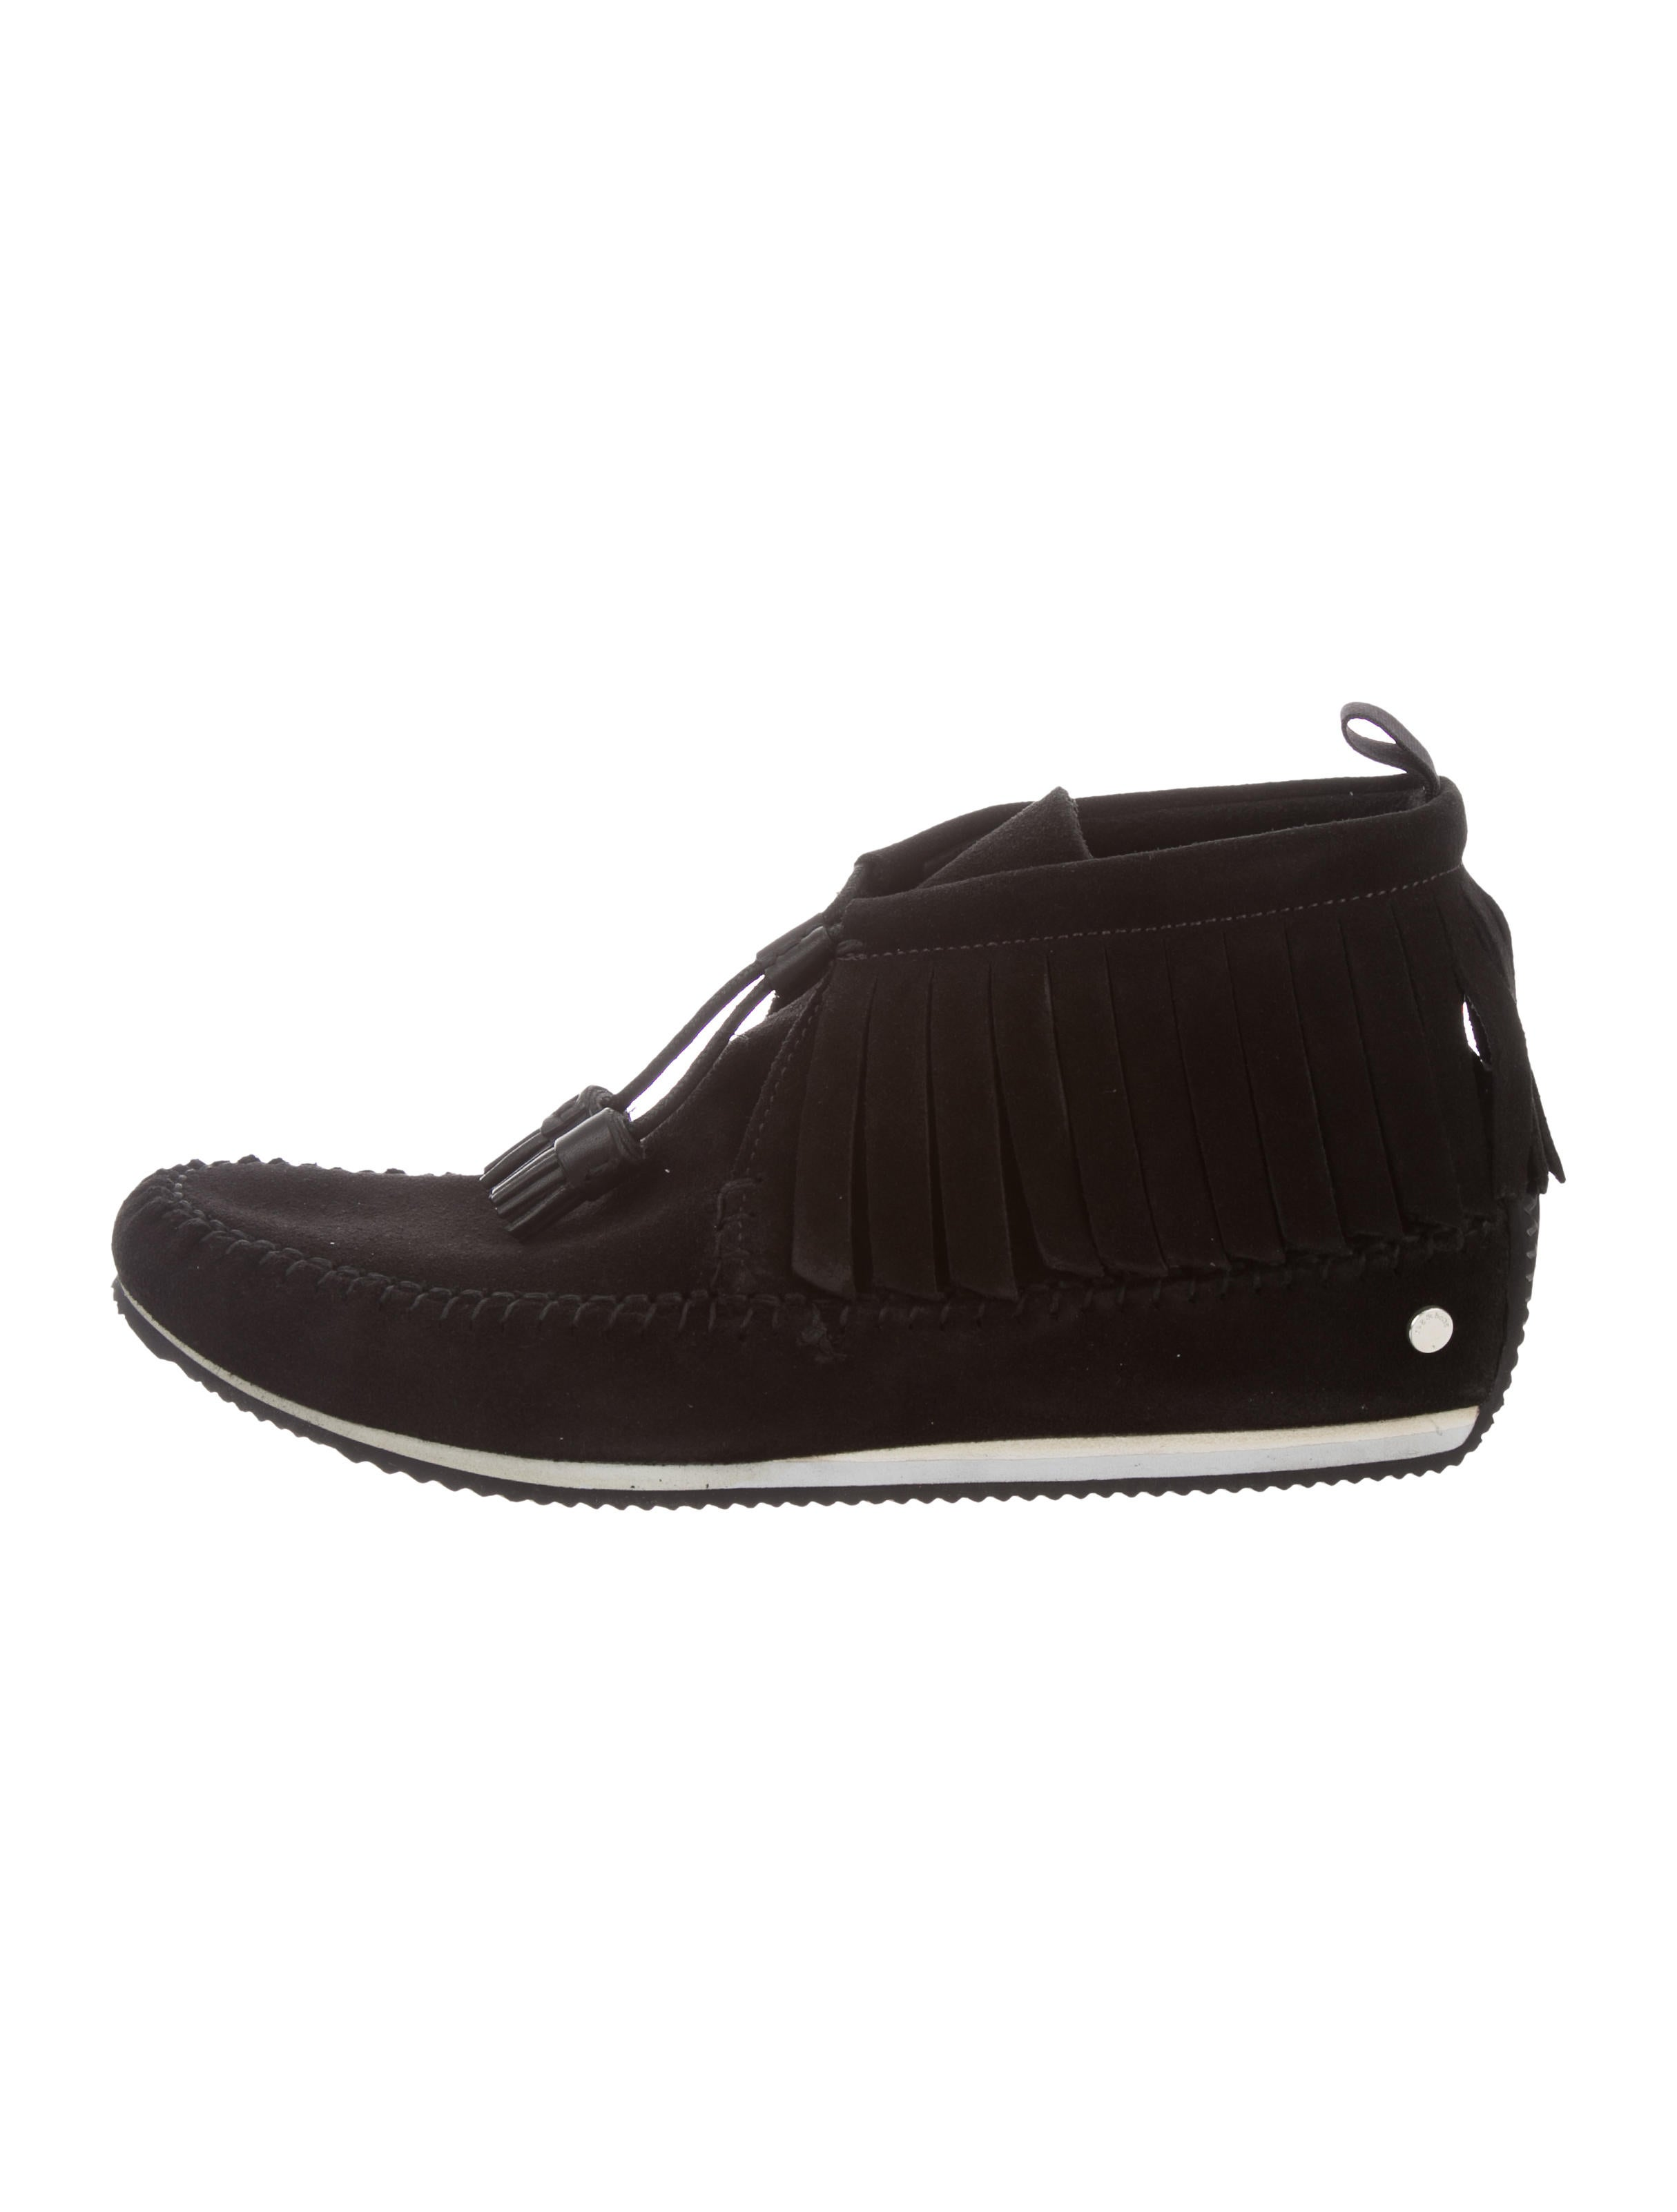 clearance shopping online outlet real Rag & Bone Ghita Fringe-Trimmed Moccasins w/ Tags free shipping fast delivery NHbq0z